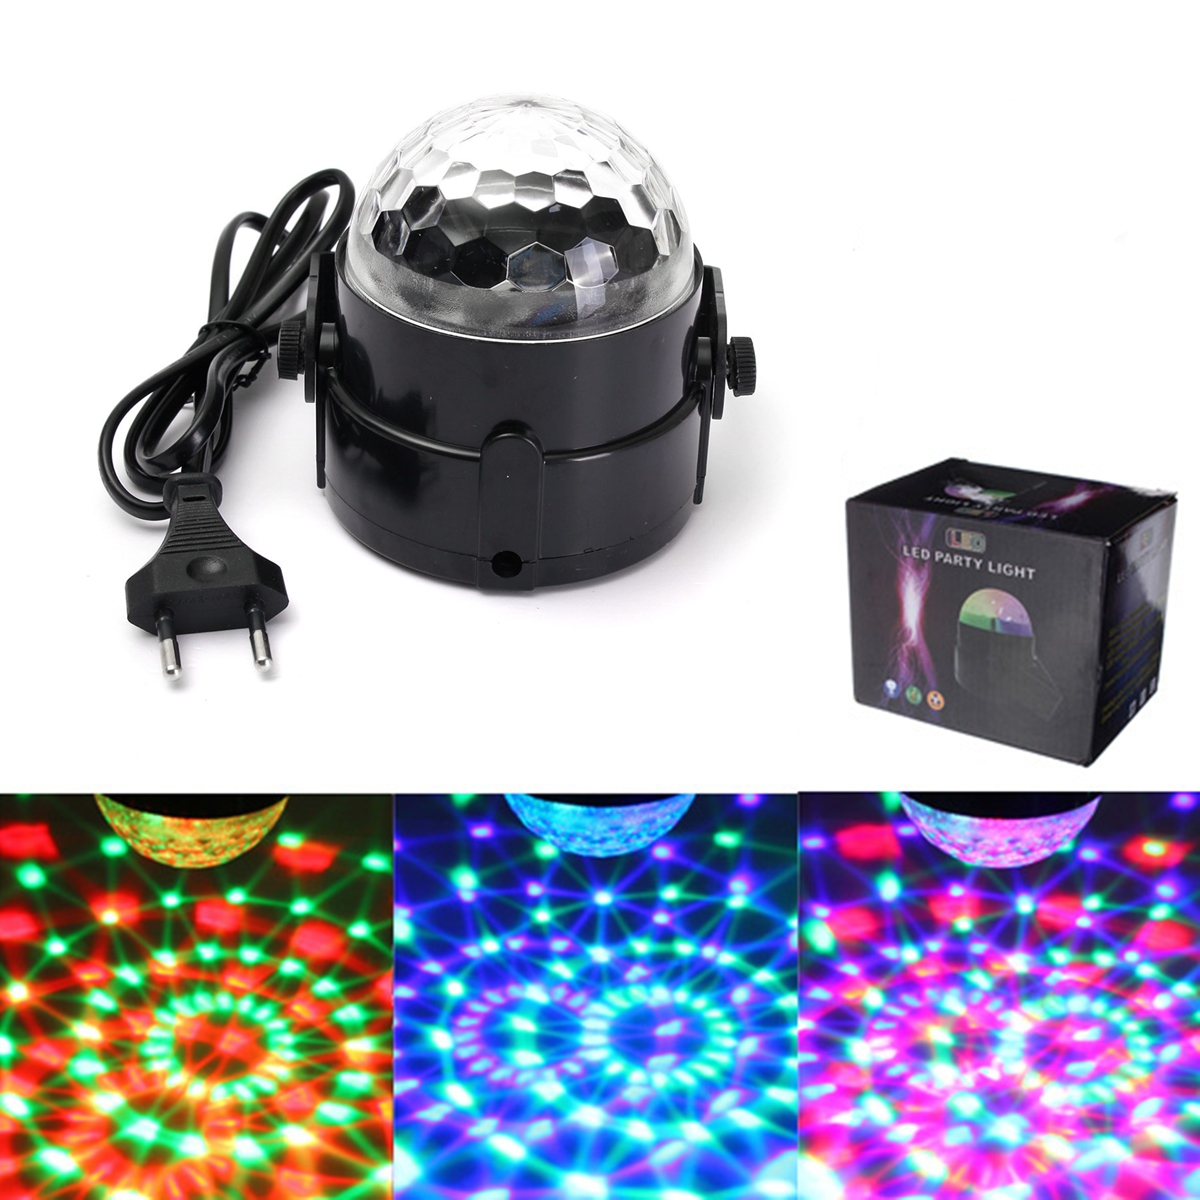 mini led laser stage projecteur xmas lumiere eclairage telecommande pr dj disco ebay. Black Bedroom Furniture Sets. Home Design Ideas